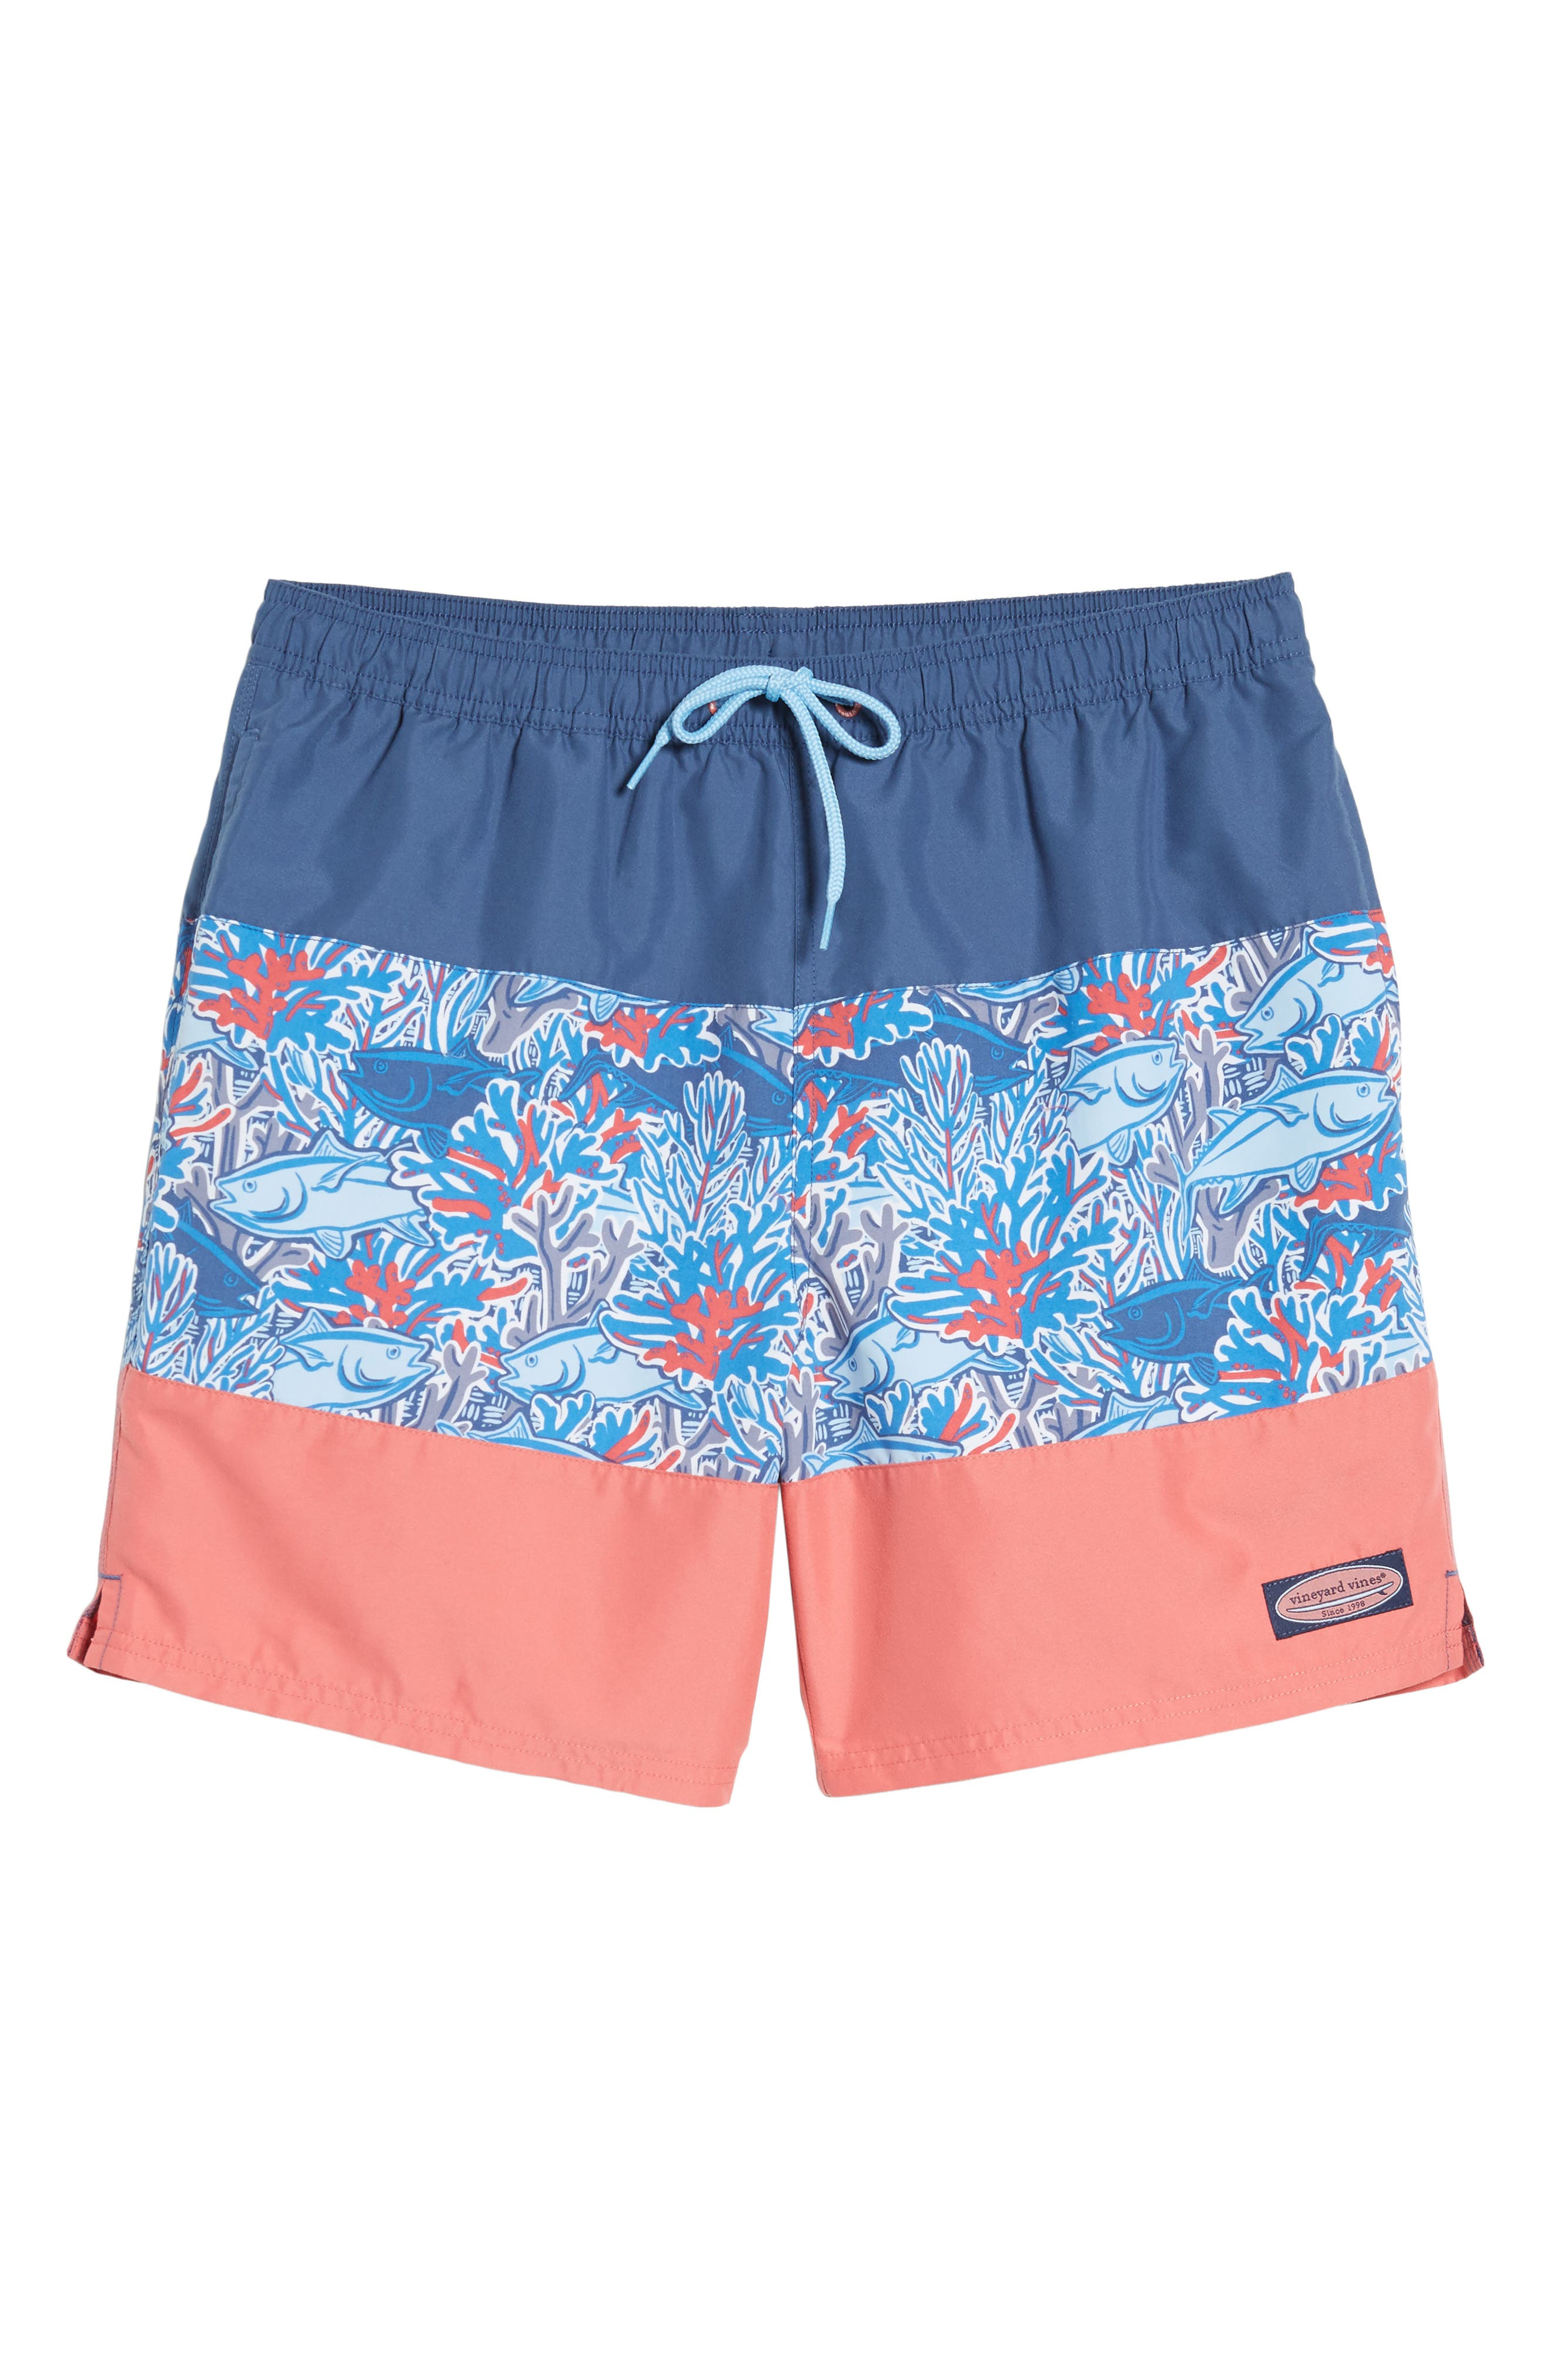 Chappy - Tuna in Coral Pieced Print Swim Trunks,                             Alternate thumbnail 6, color,